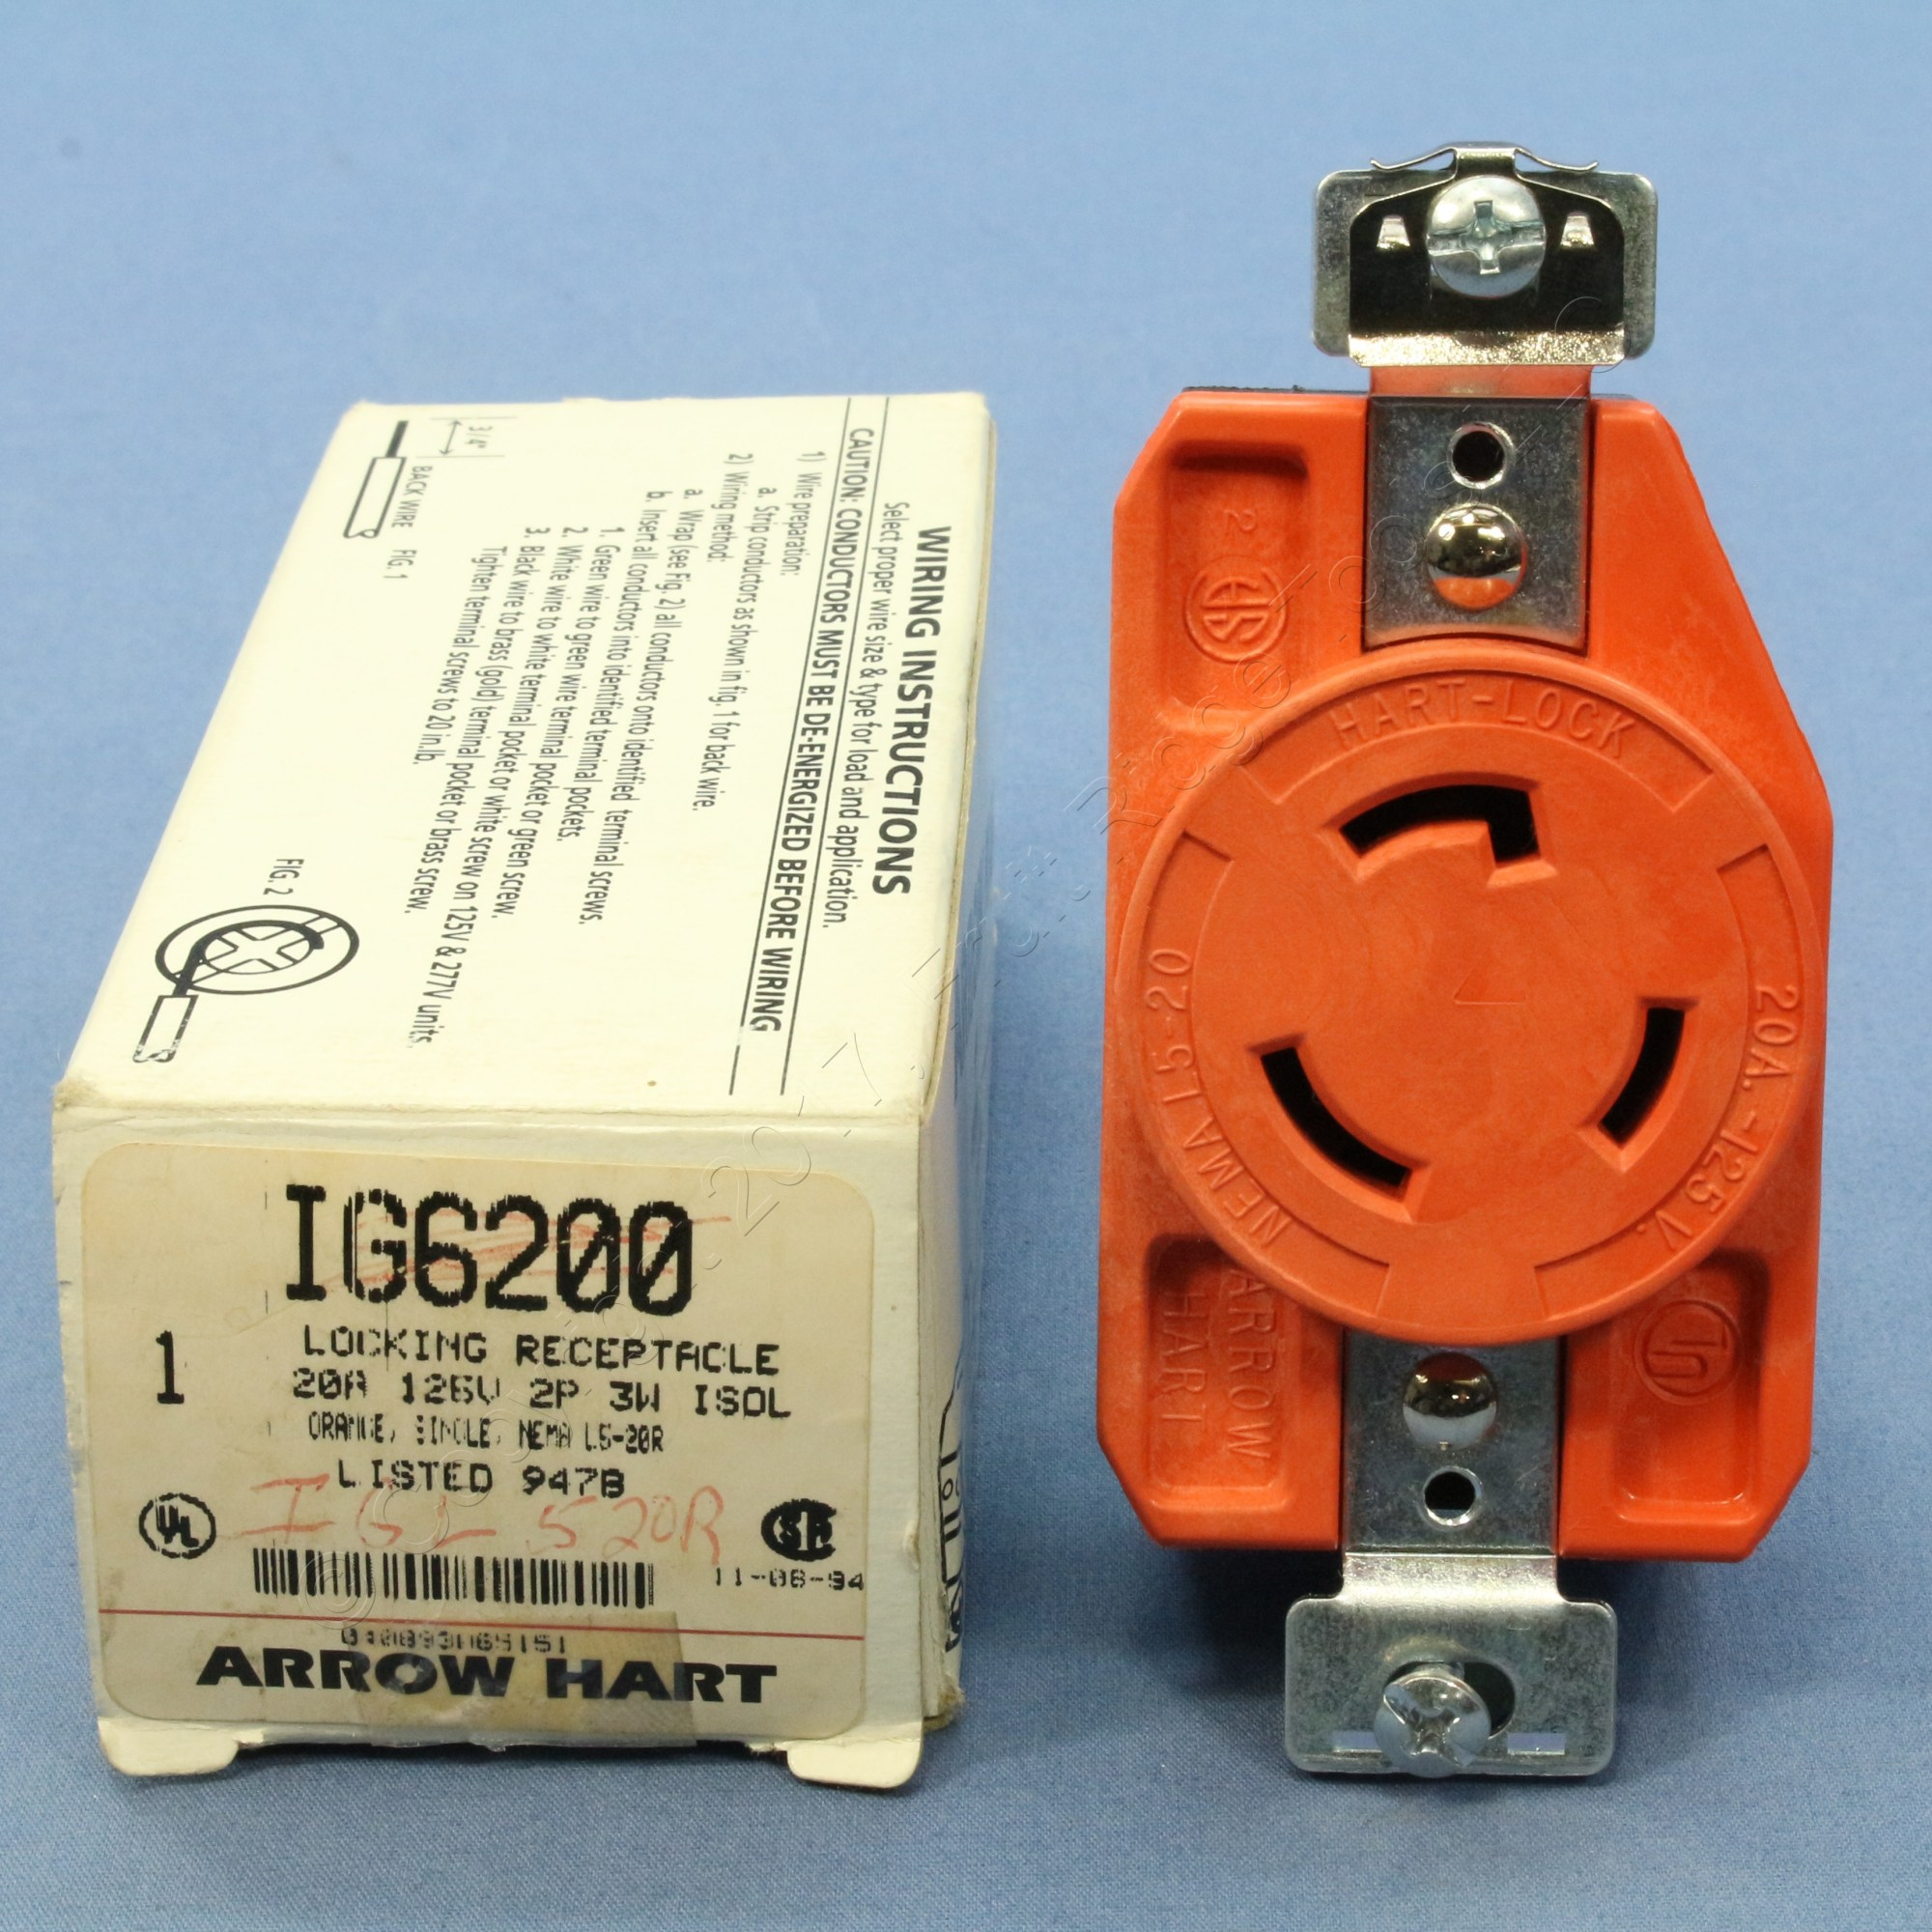 hight resolution of new isolated ground locking outlet twist turn receptacle 20a arrow hart ig6200